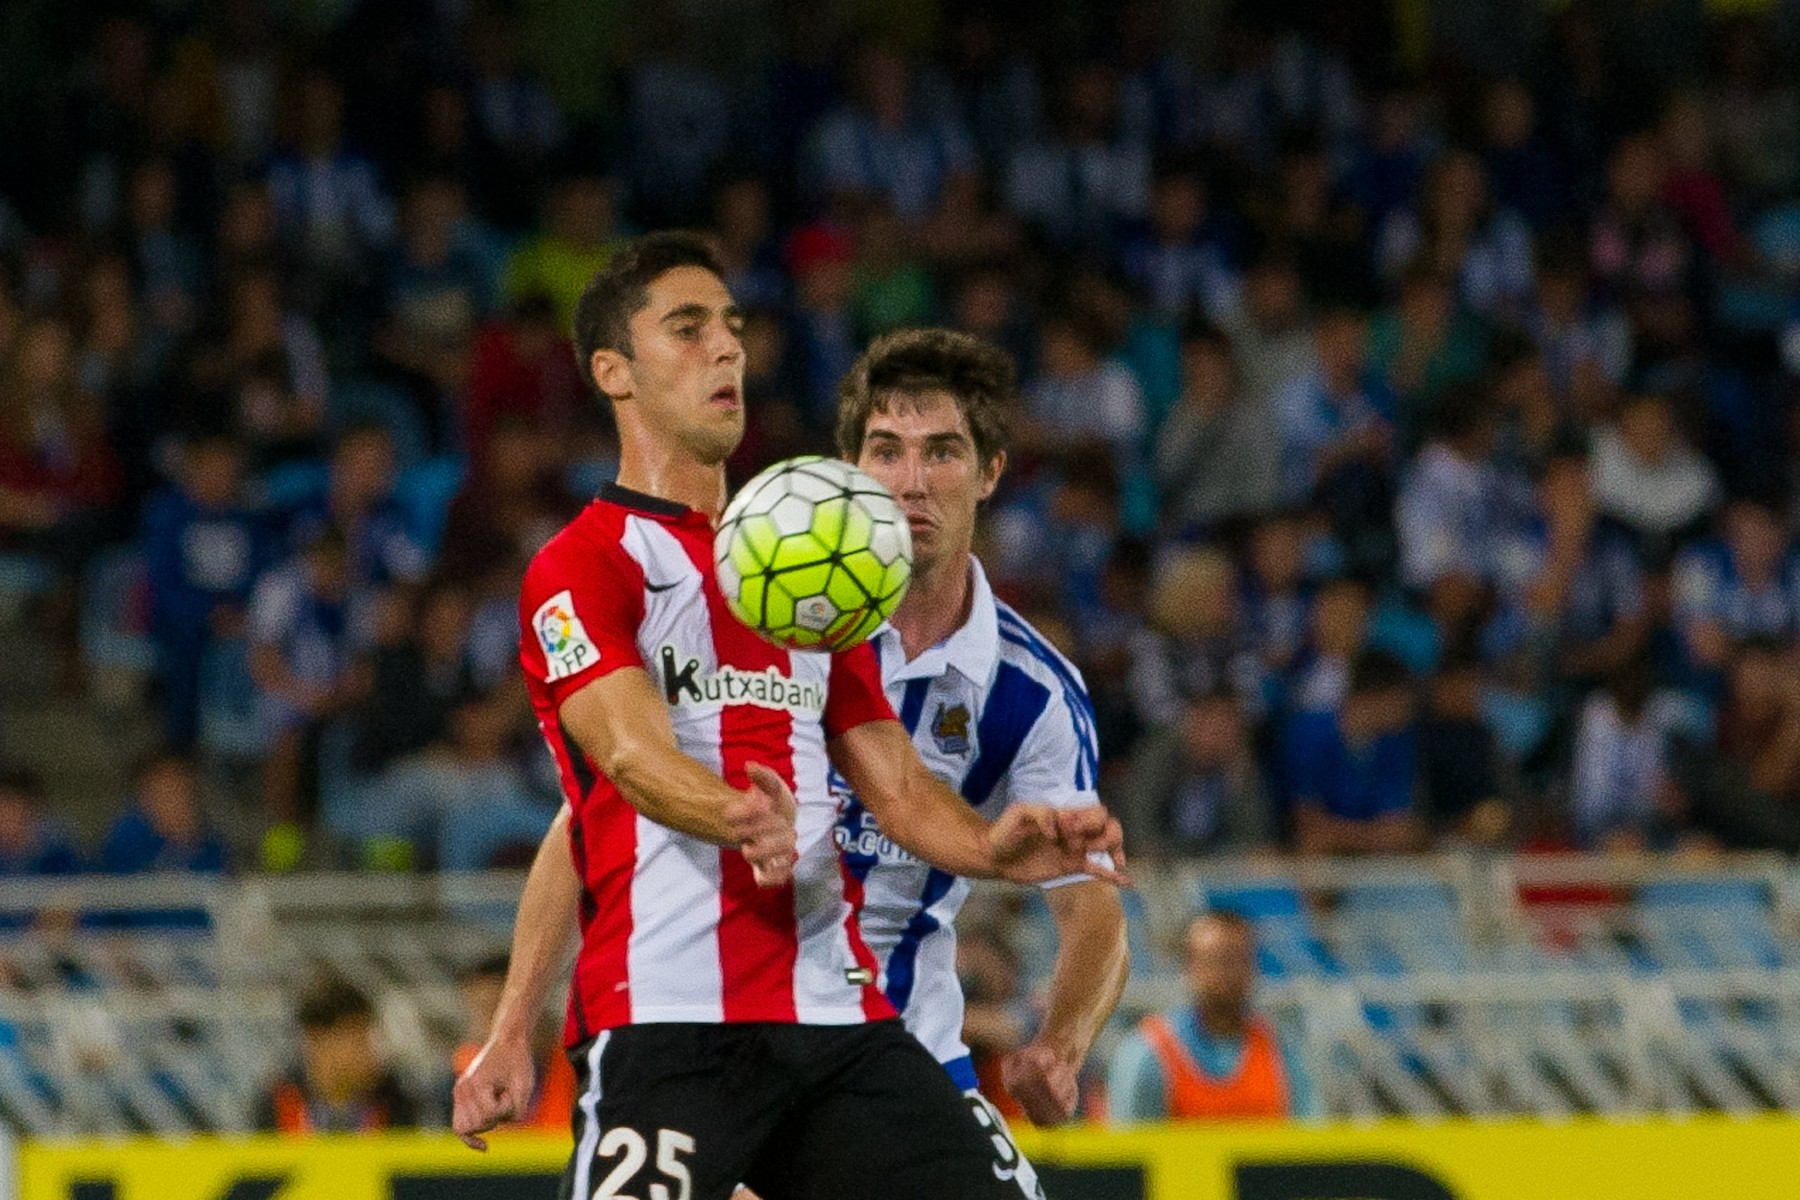 Spanish league football match between Real Sociedad and Athletic Club